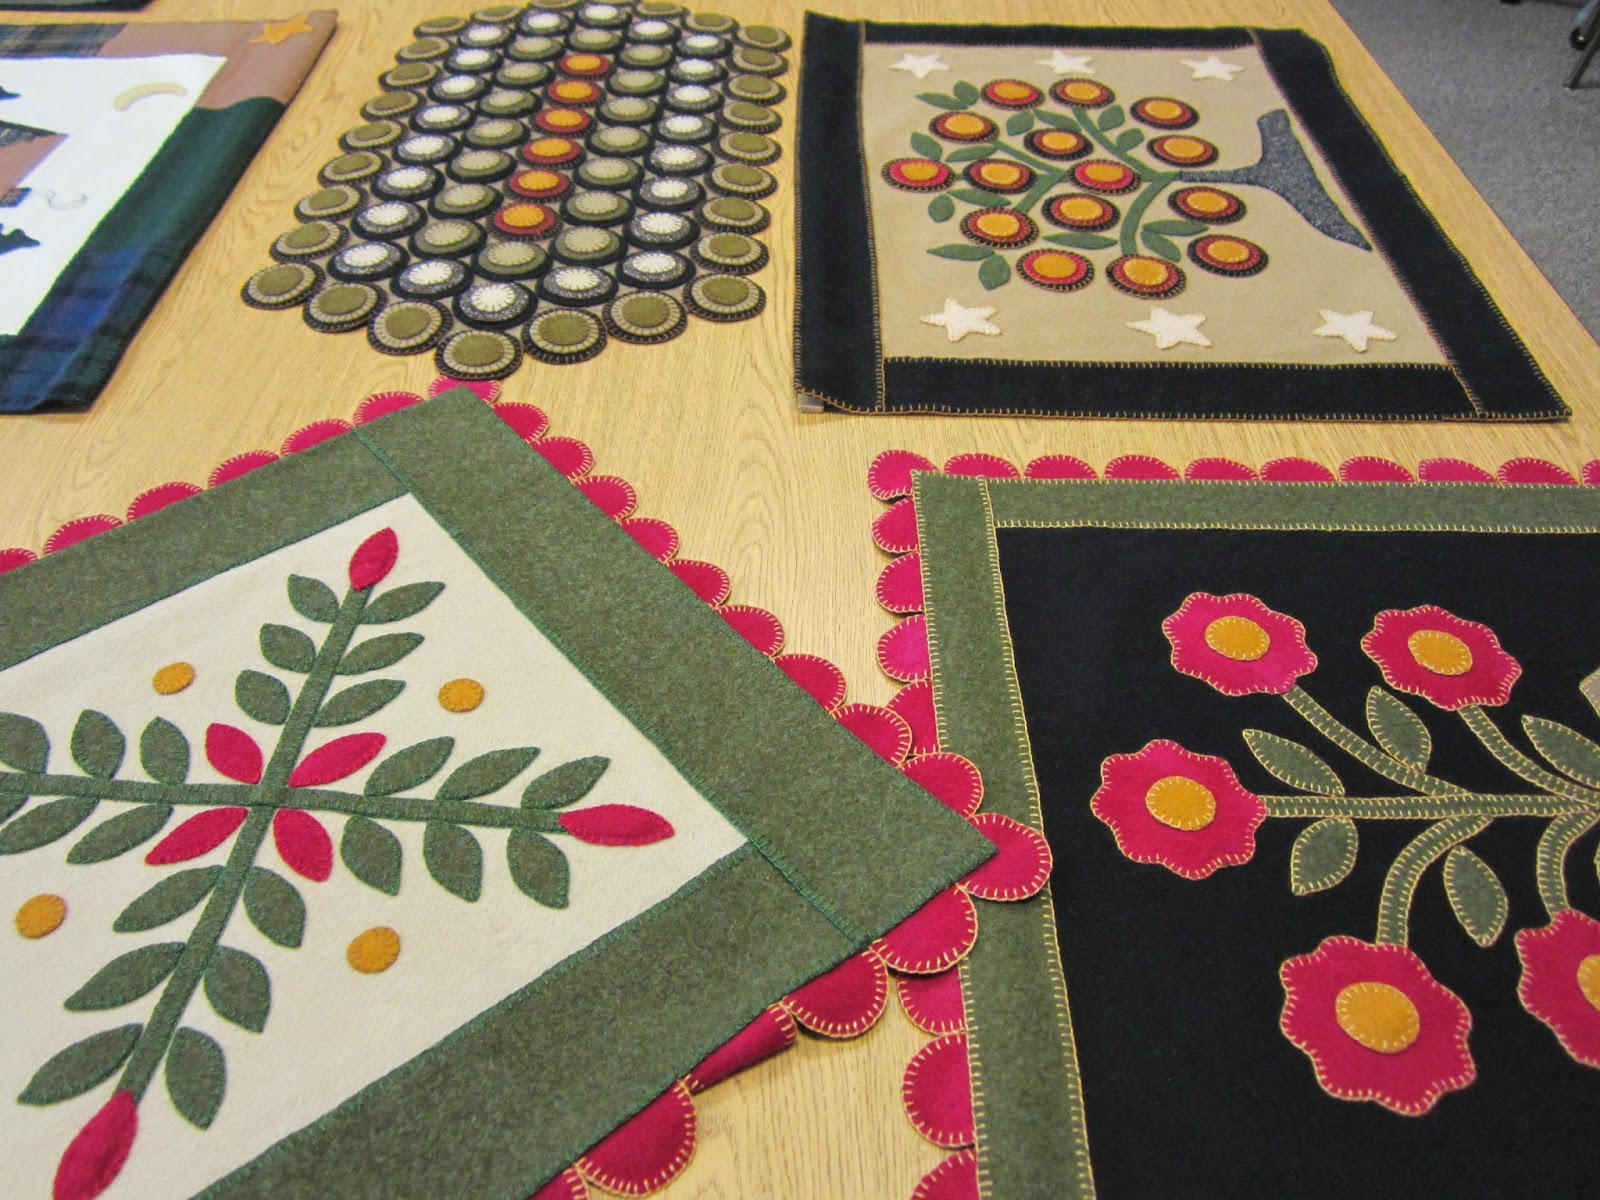 rugs and for the penny designs this requires a lot of hand sewing using the blanket stitch with embroidery floss lorri uses old designs and creates